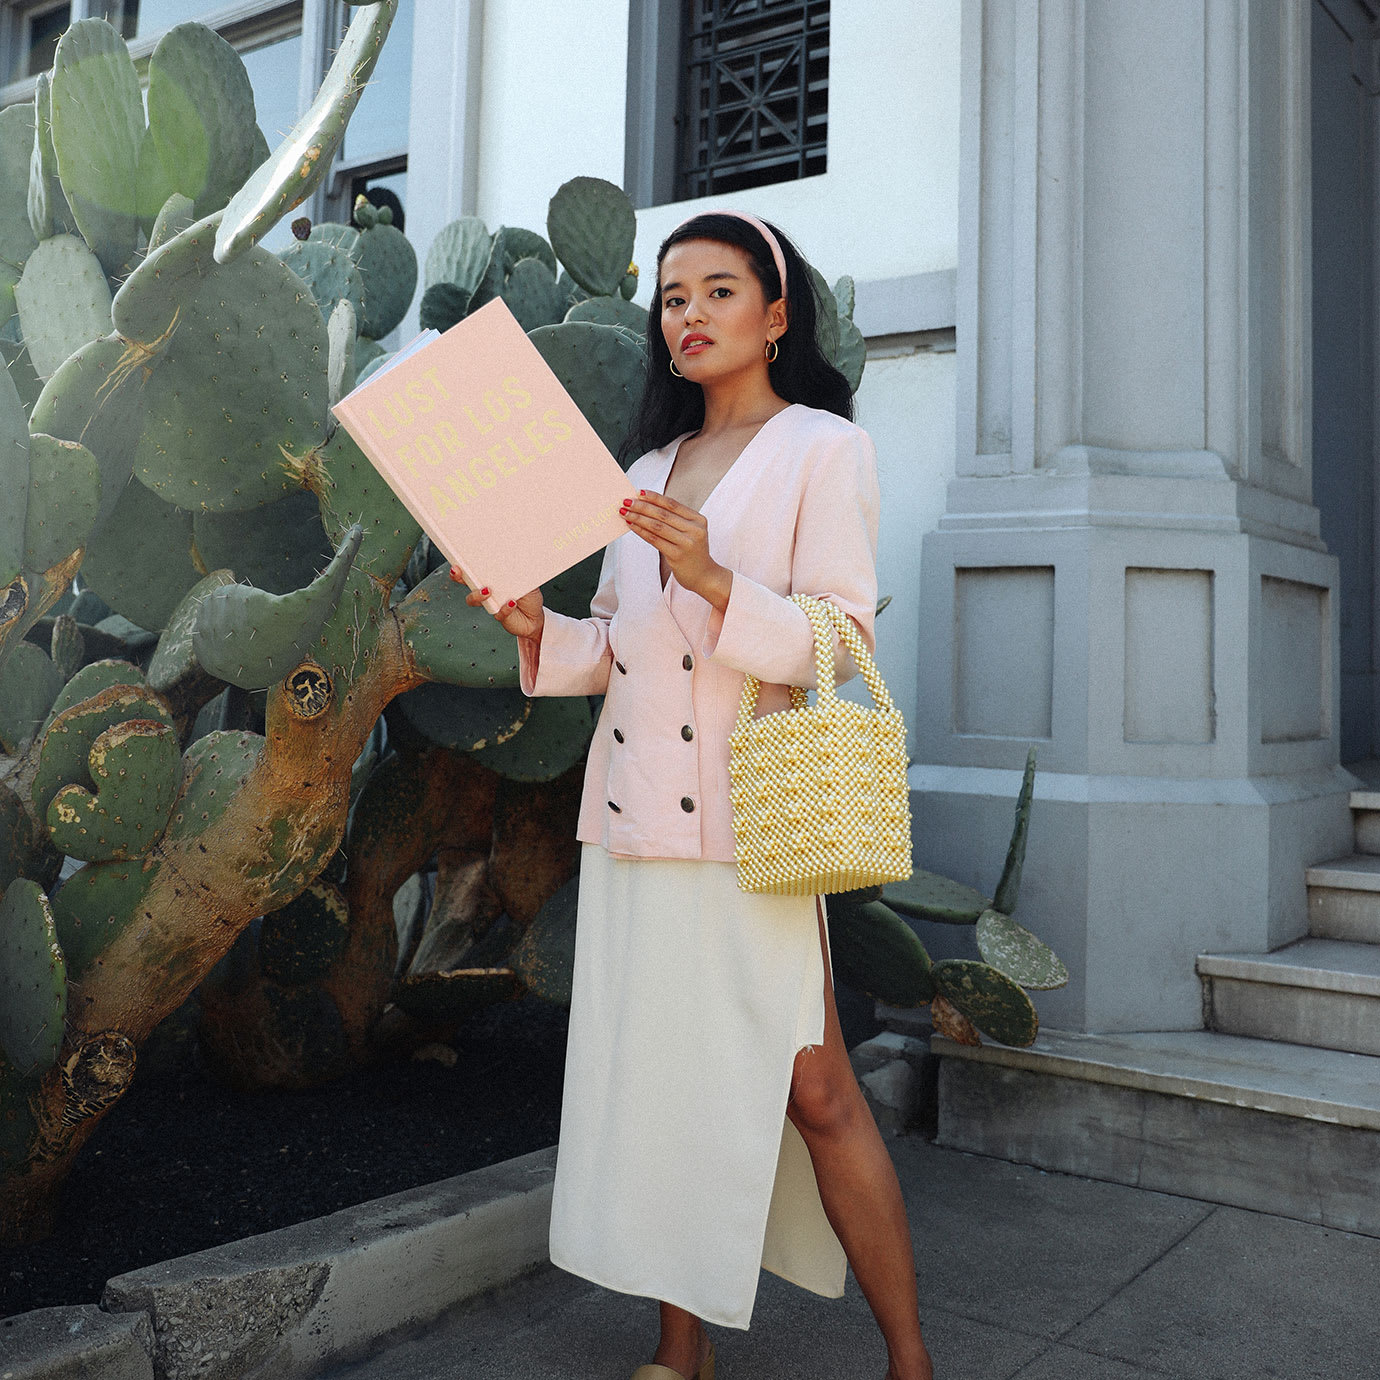 A woman holding a book in front of a white building.